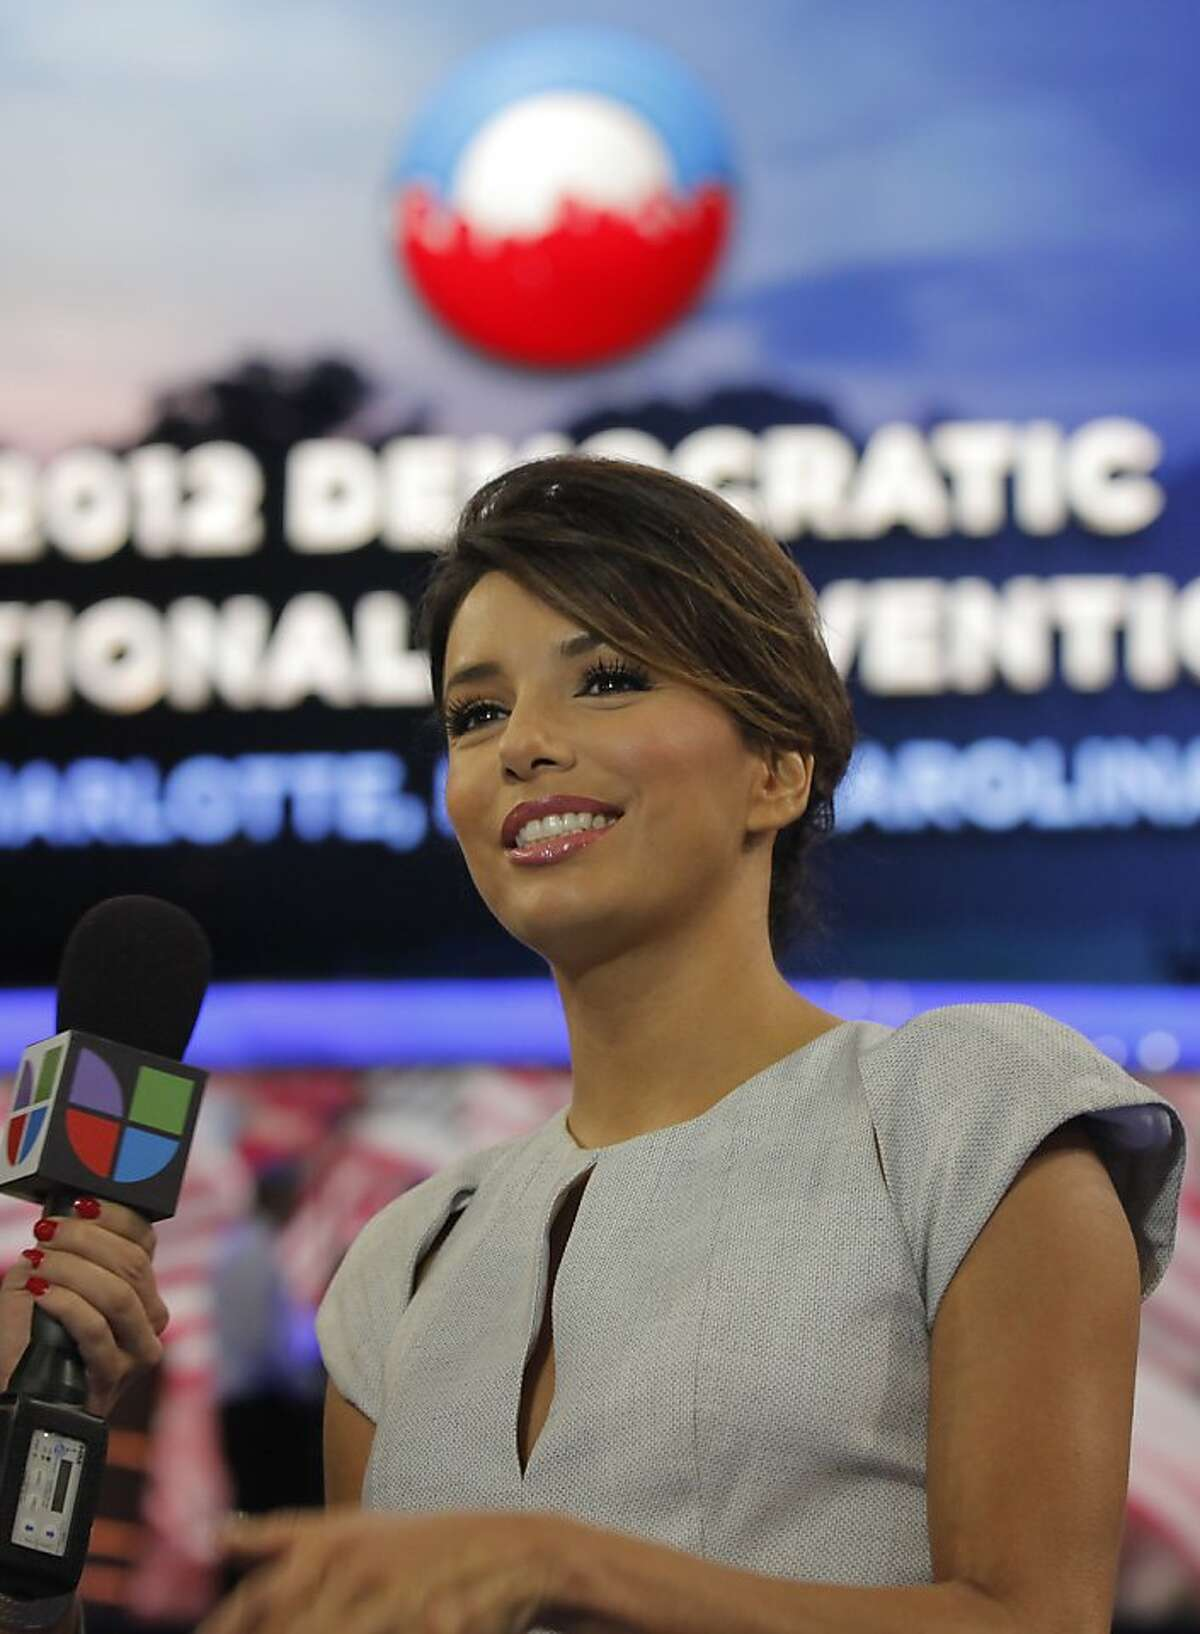 Actress Eva Longoria is interviewed on the floor of the Democratic National Convention in Charlotte, N.C., Thursday, Sept. 6, 2012.